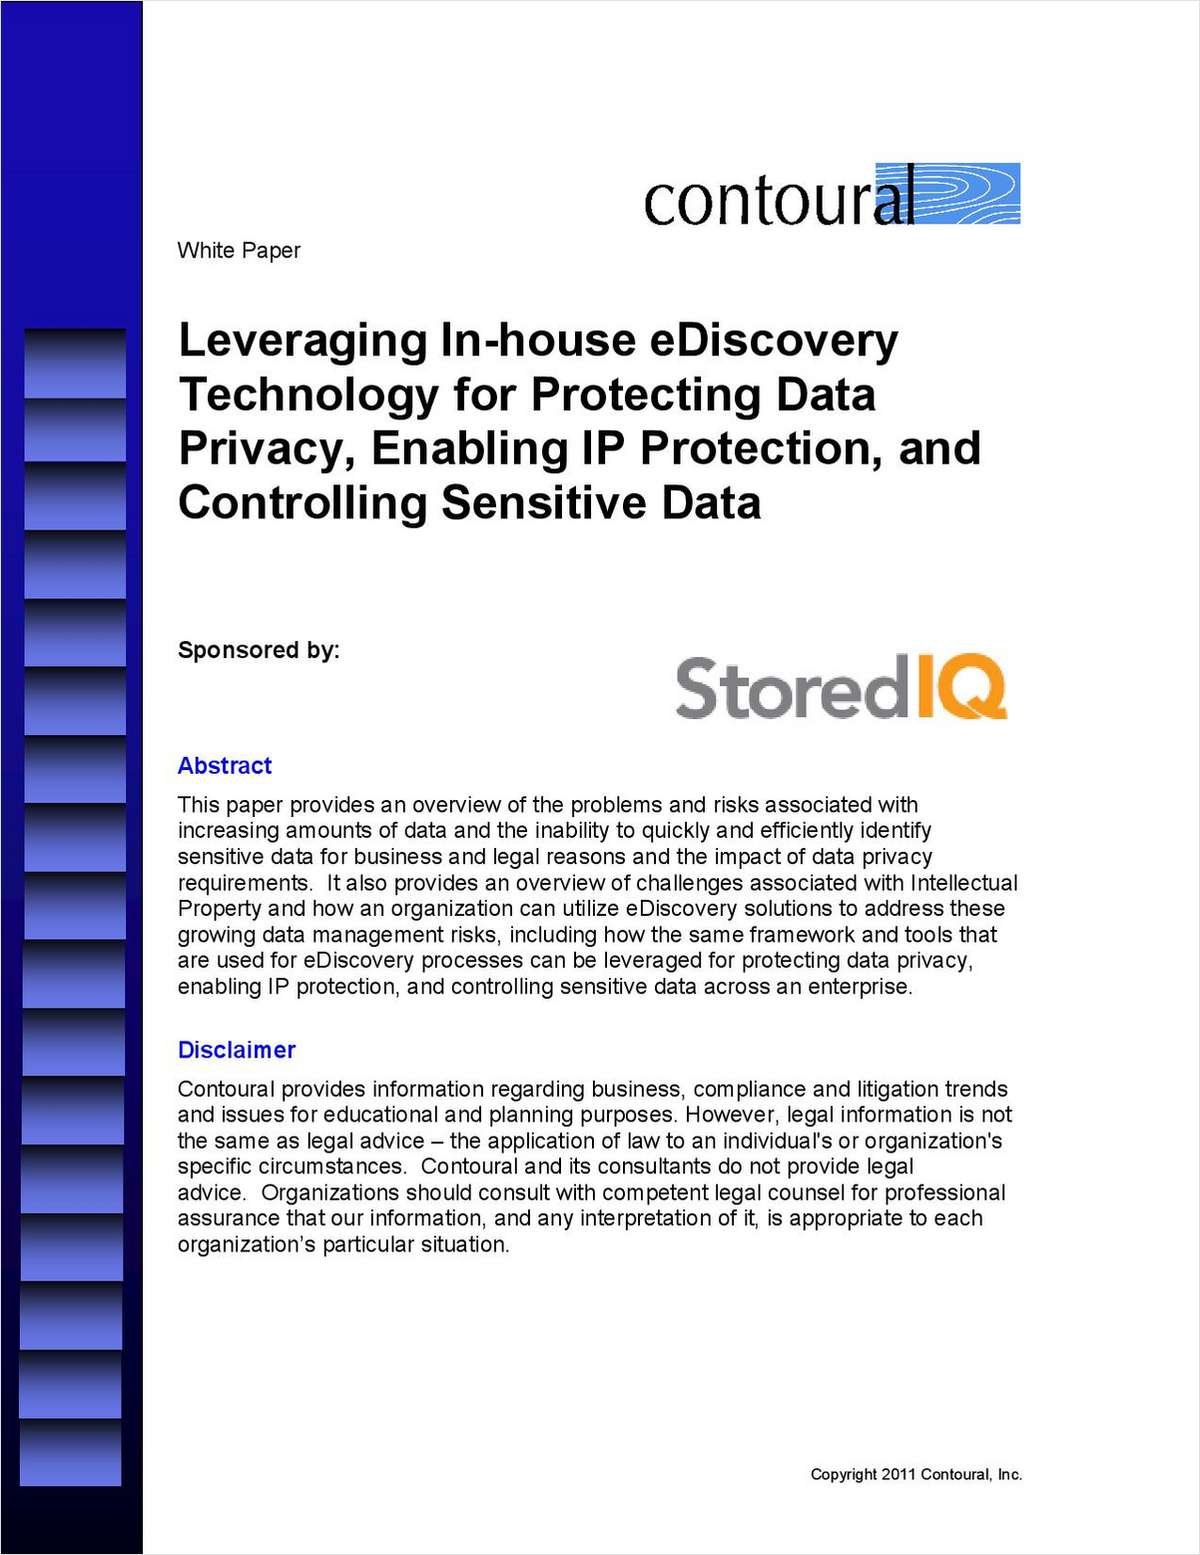 Leveraging In-house eDiscovery Technology for Protecting Data Privacy, Enabling IP Protection, and Controlling Sensitive Data